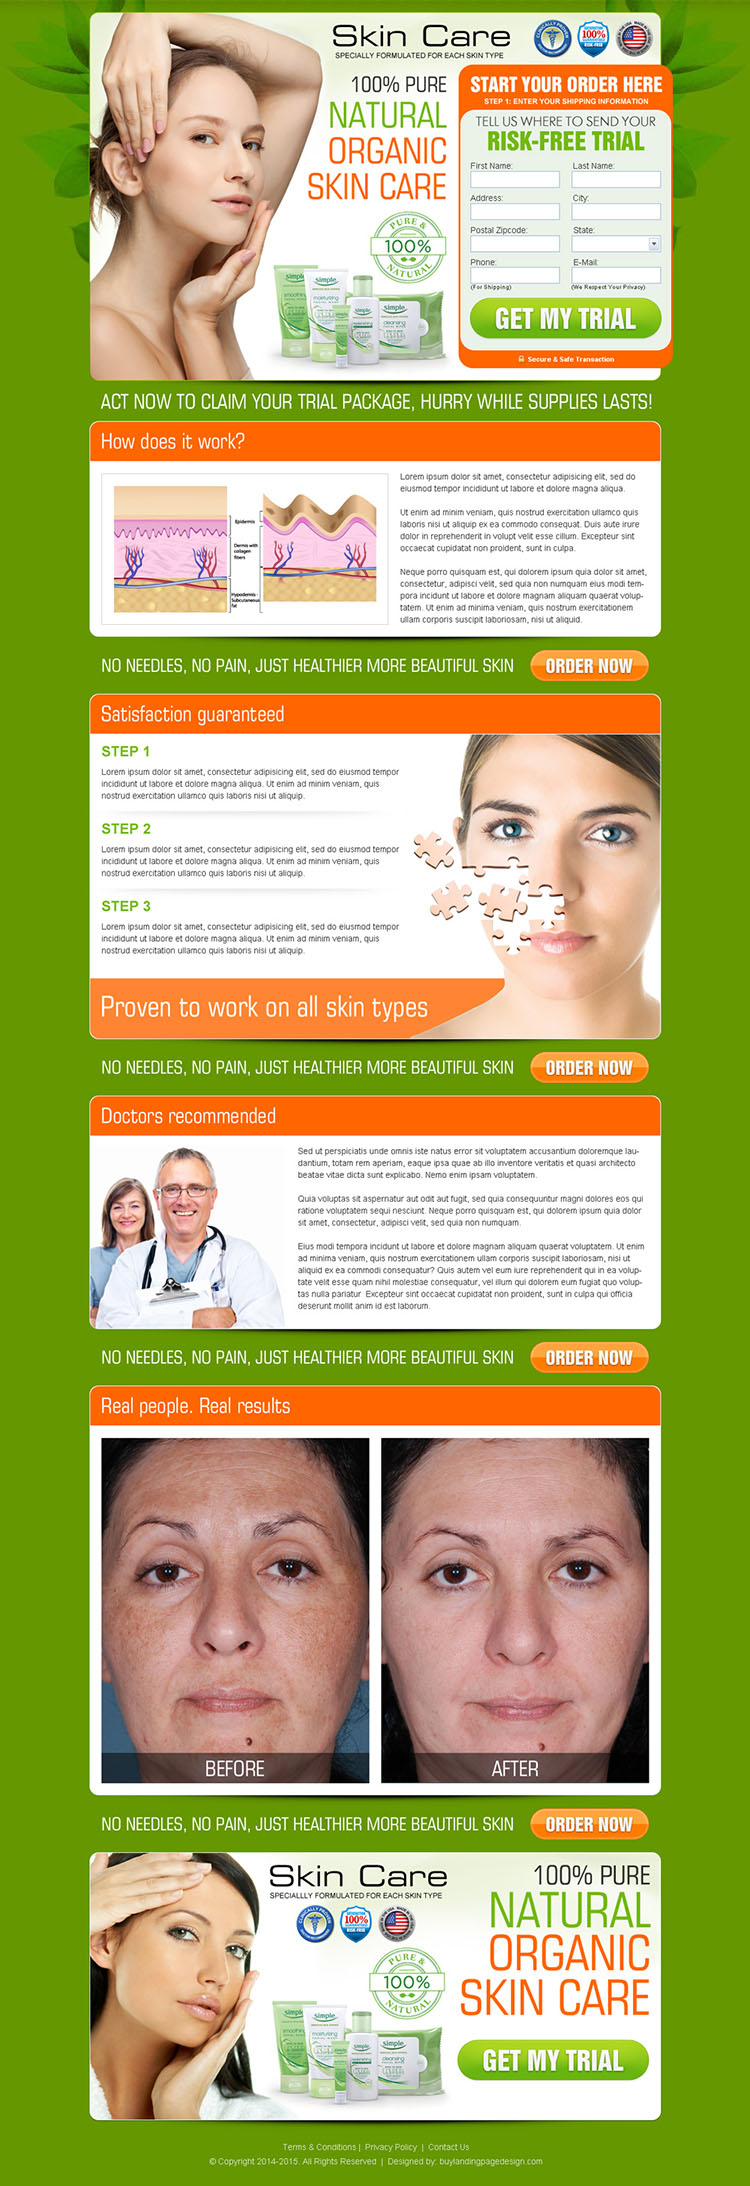 natural organic skin care product effective lead capture landing page design